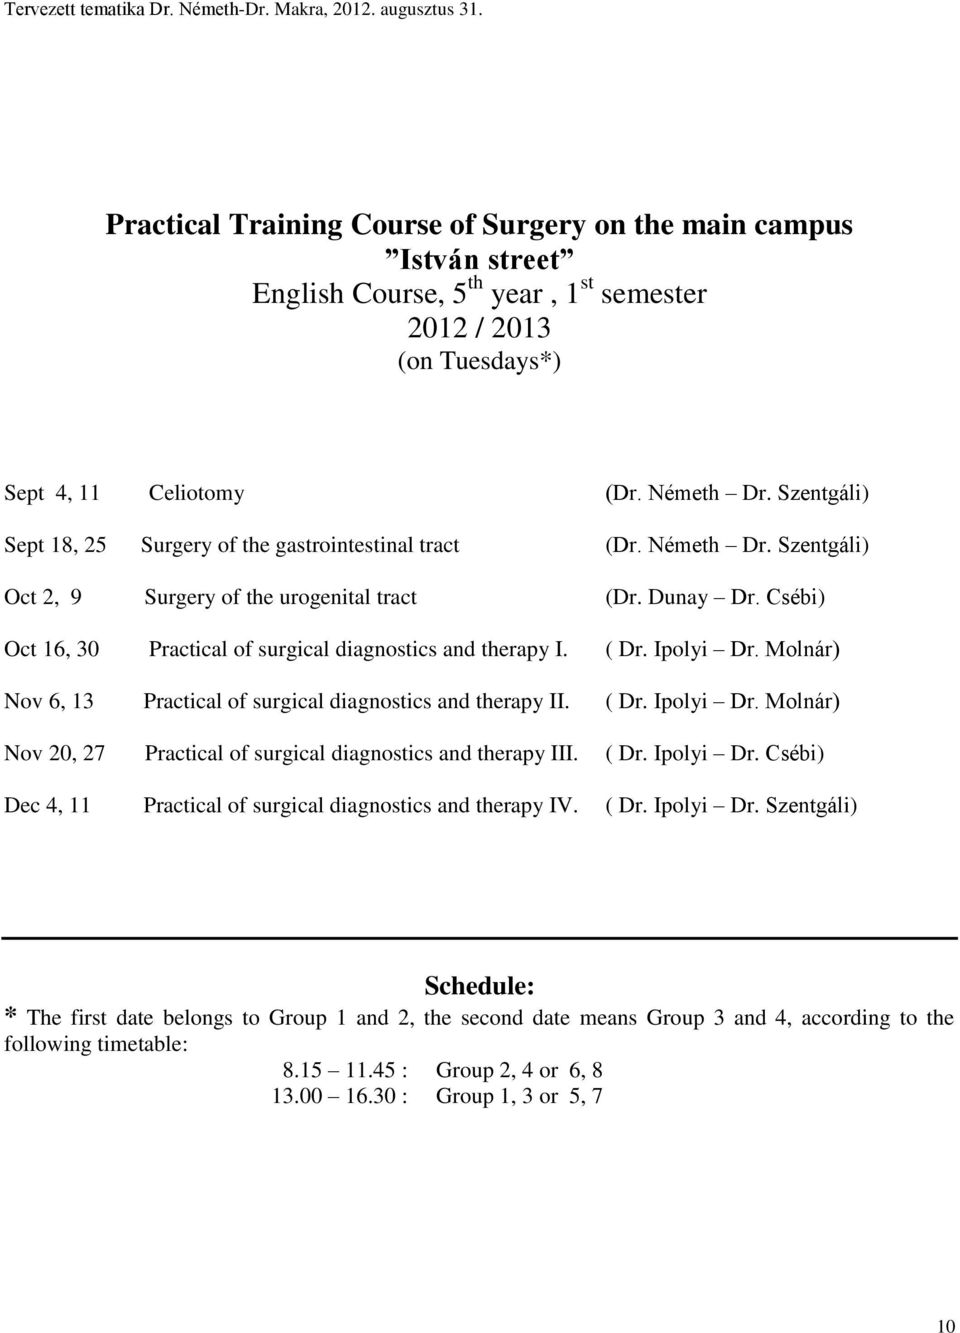 Csébi) Oct 16, 30 Practical of surgical diagnostics and therapy I. ( Dr. Ipolyi Dr. Molnár) Nov 6, 13 Practical of surgical diagnostics and therapy II. ( Dr. Ipolyi Dr. Molnár) Nov 20, 27 Practical of surgical diagnostics and therapy III.